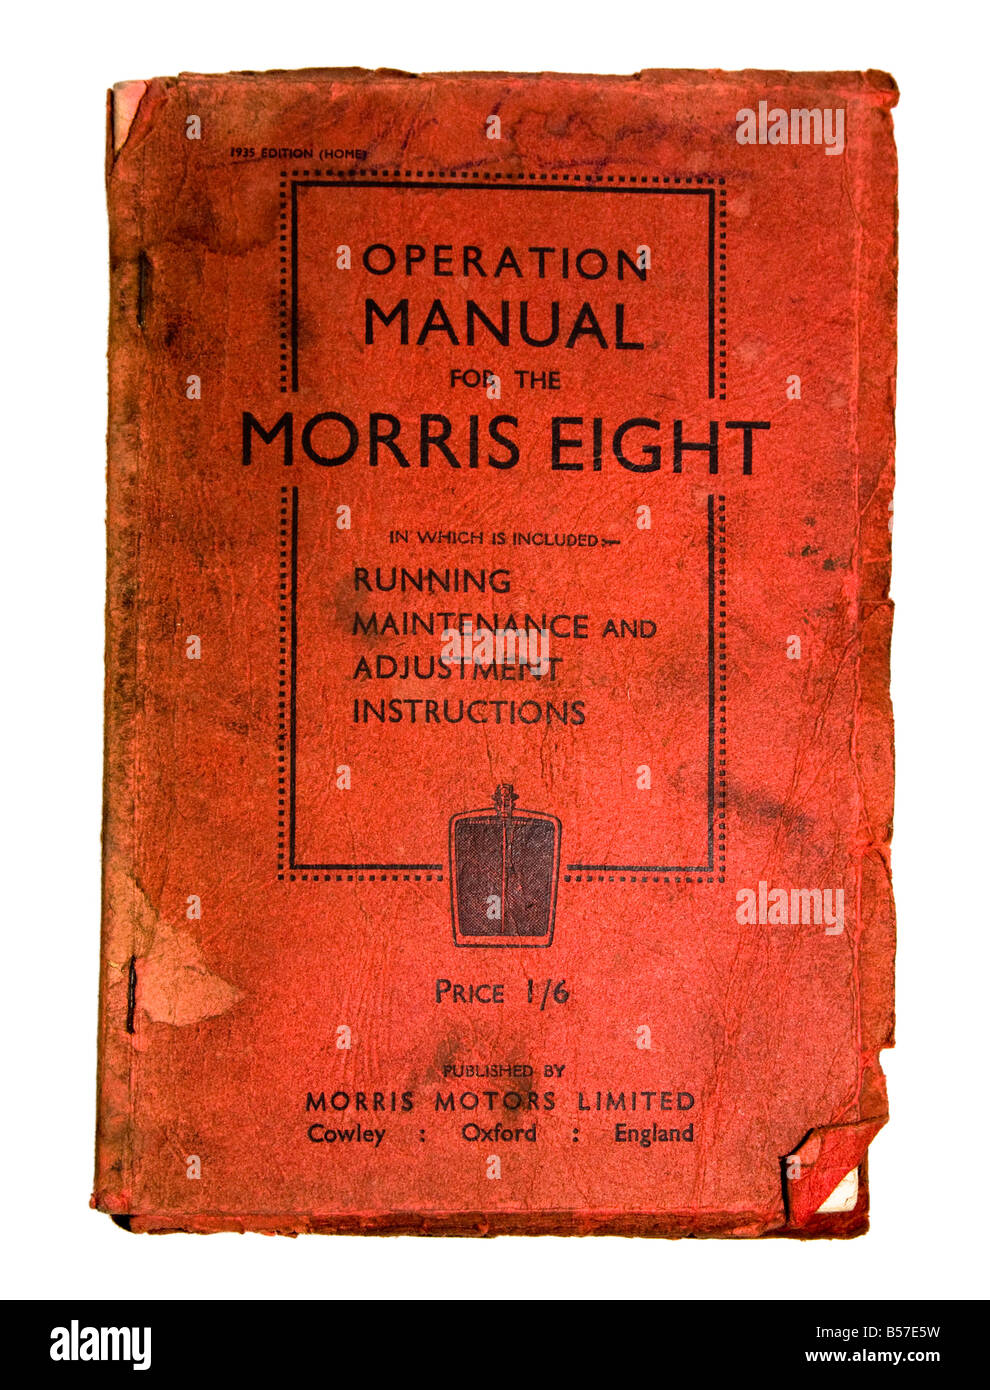 Operation manual for Morris Eight car 1935 - Stock Image